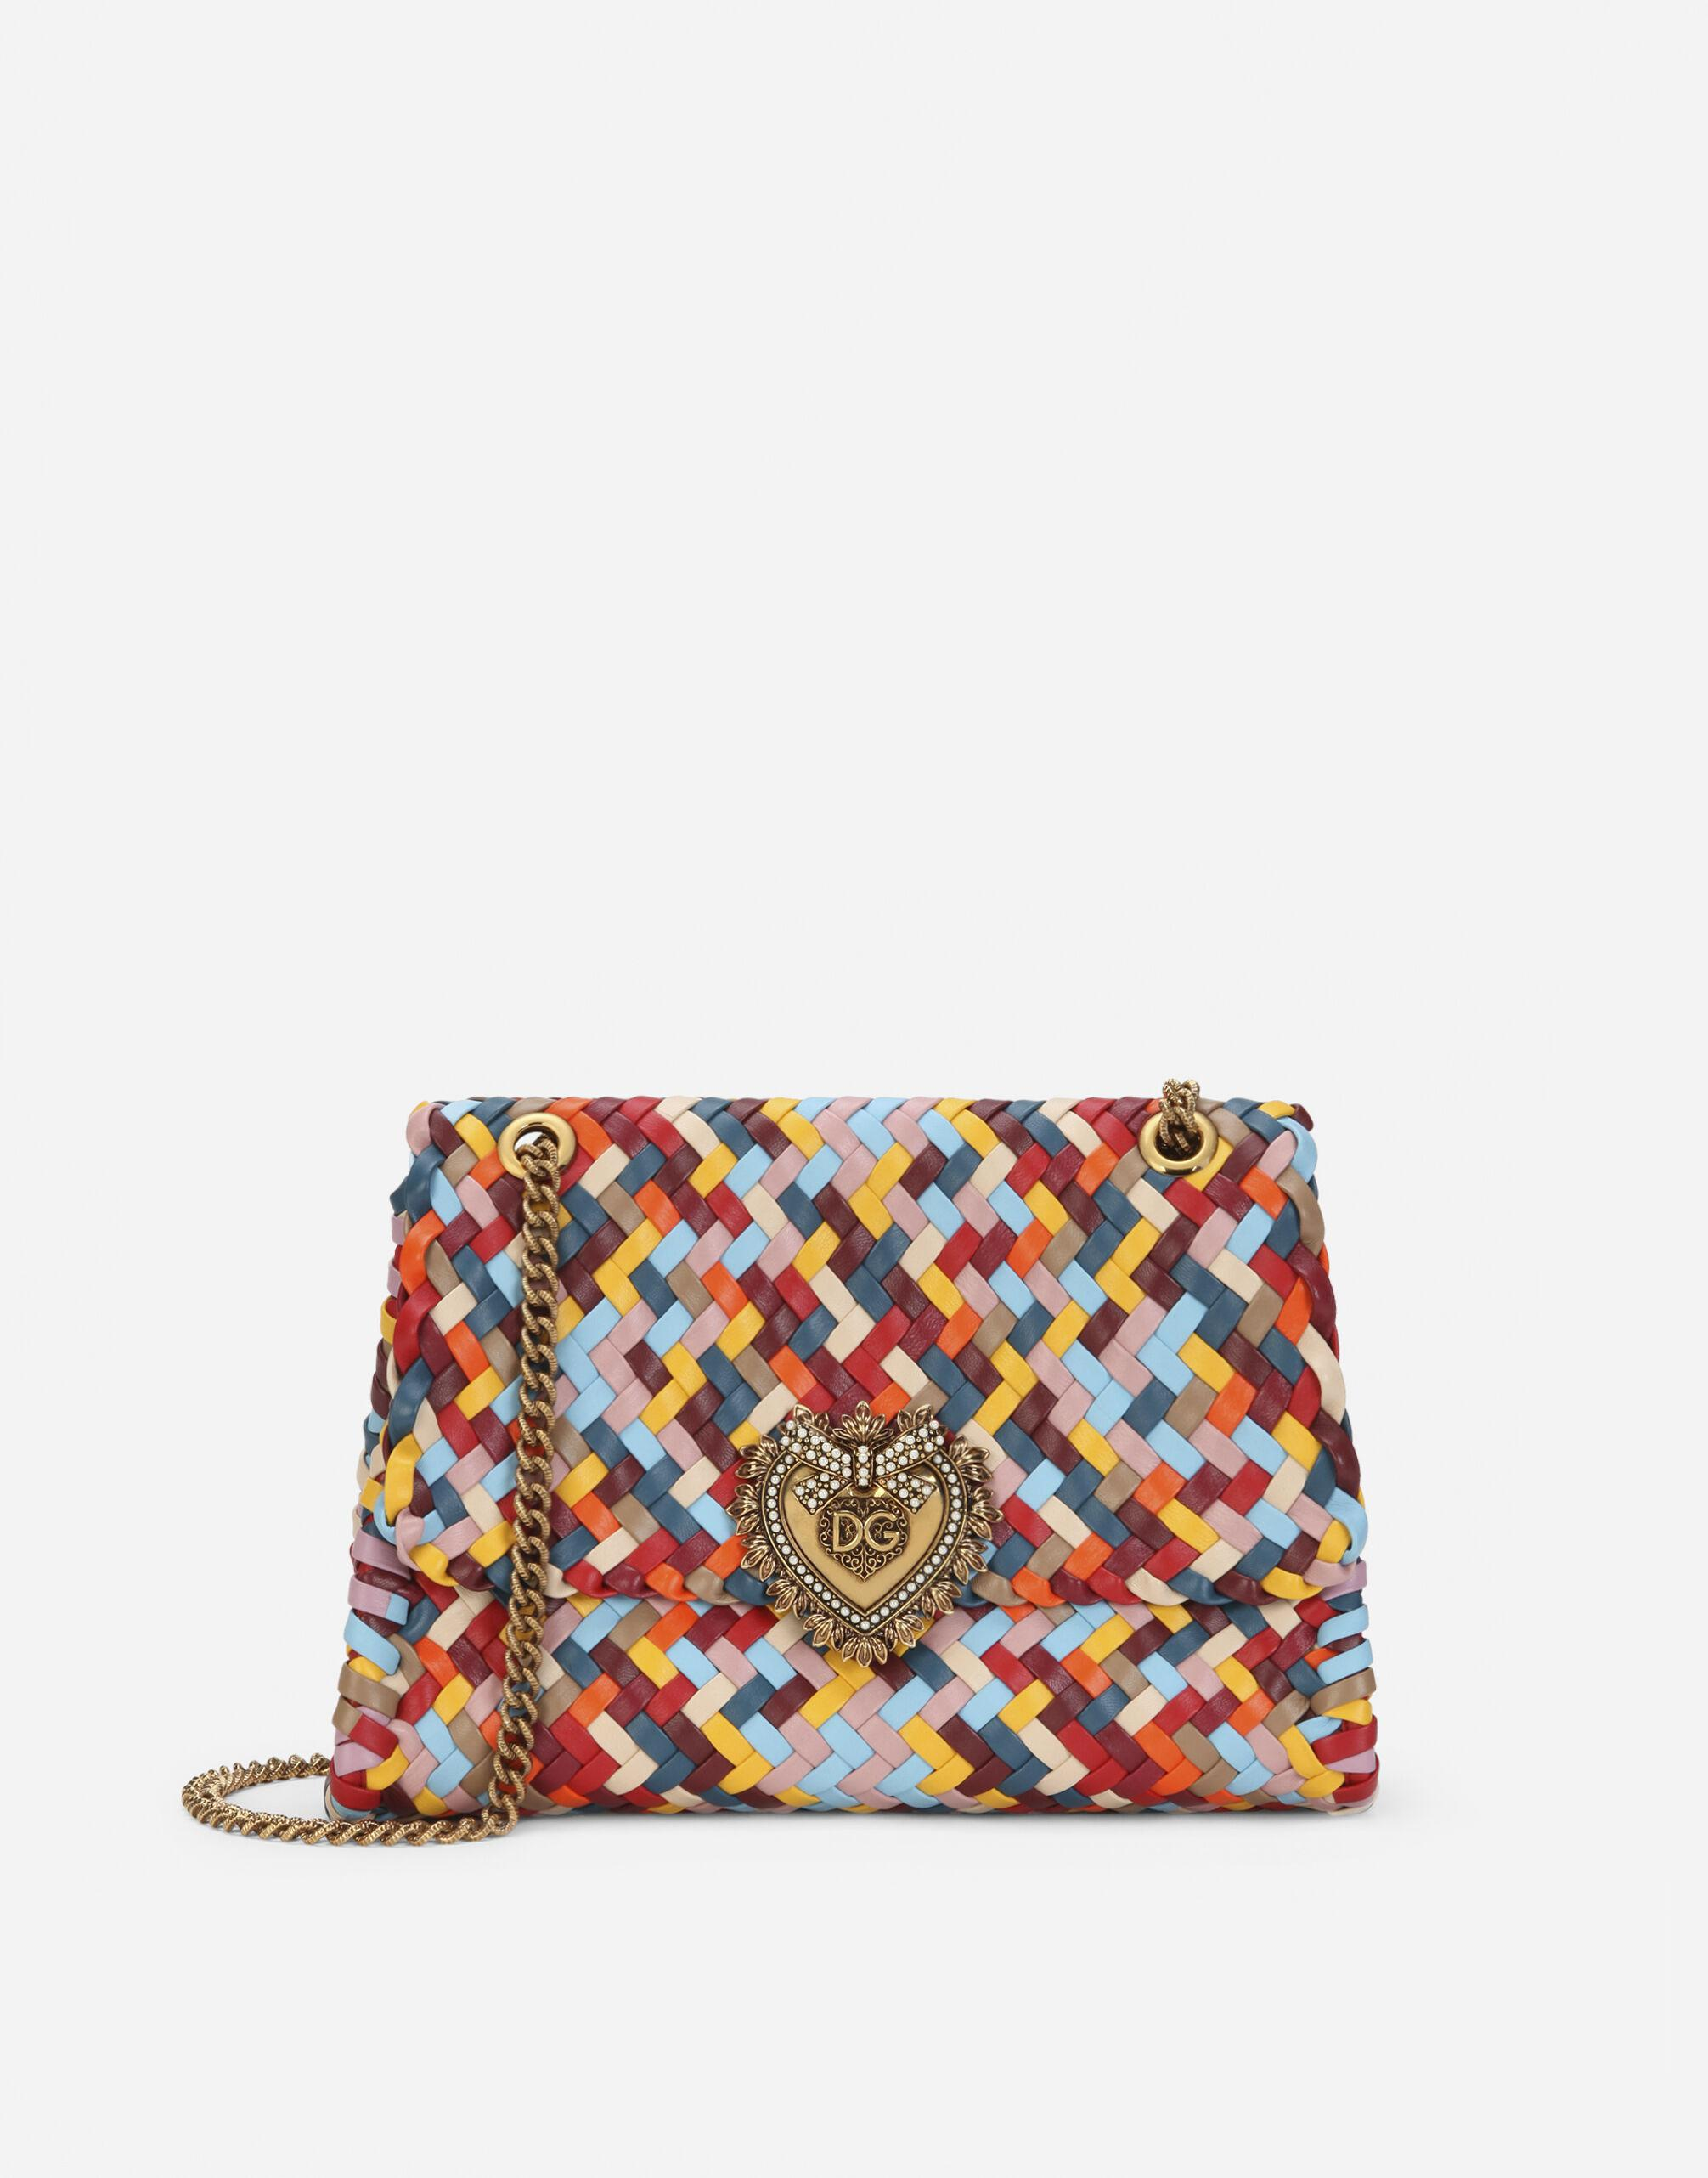 Large Devotion shoulder bag in multi-colored woven nappa leather